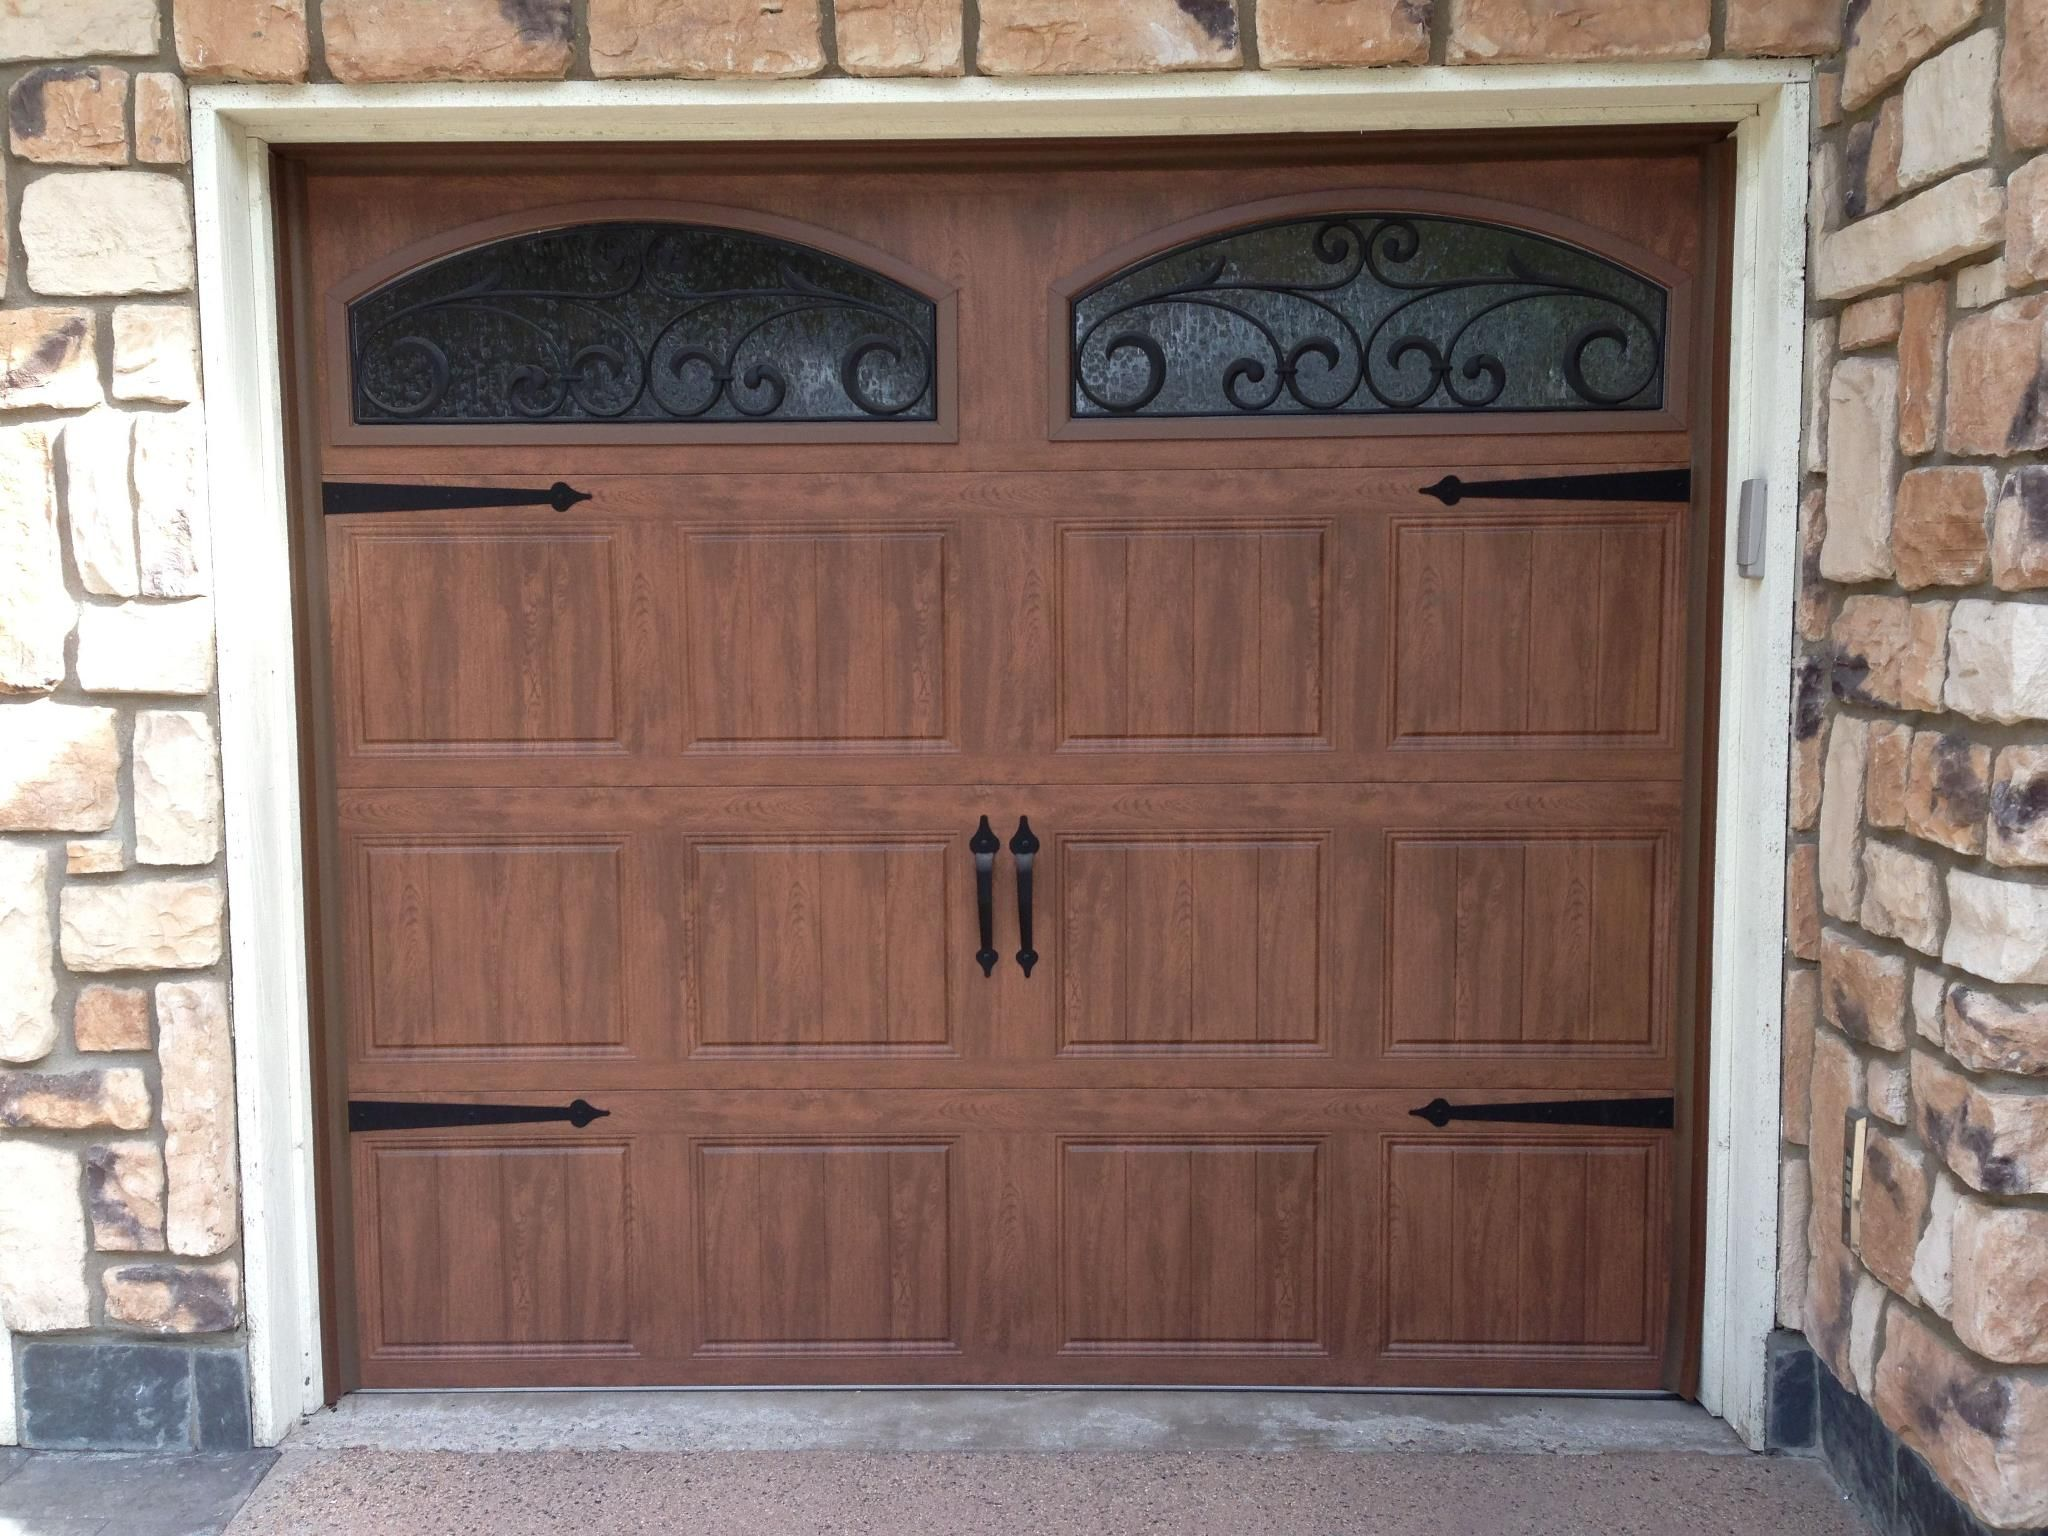 Clopay walnut finish Gallery Collection garage doors with arched